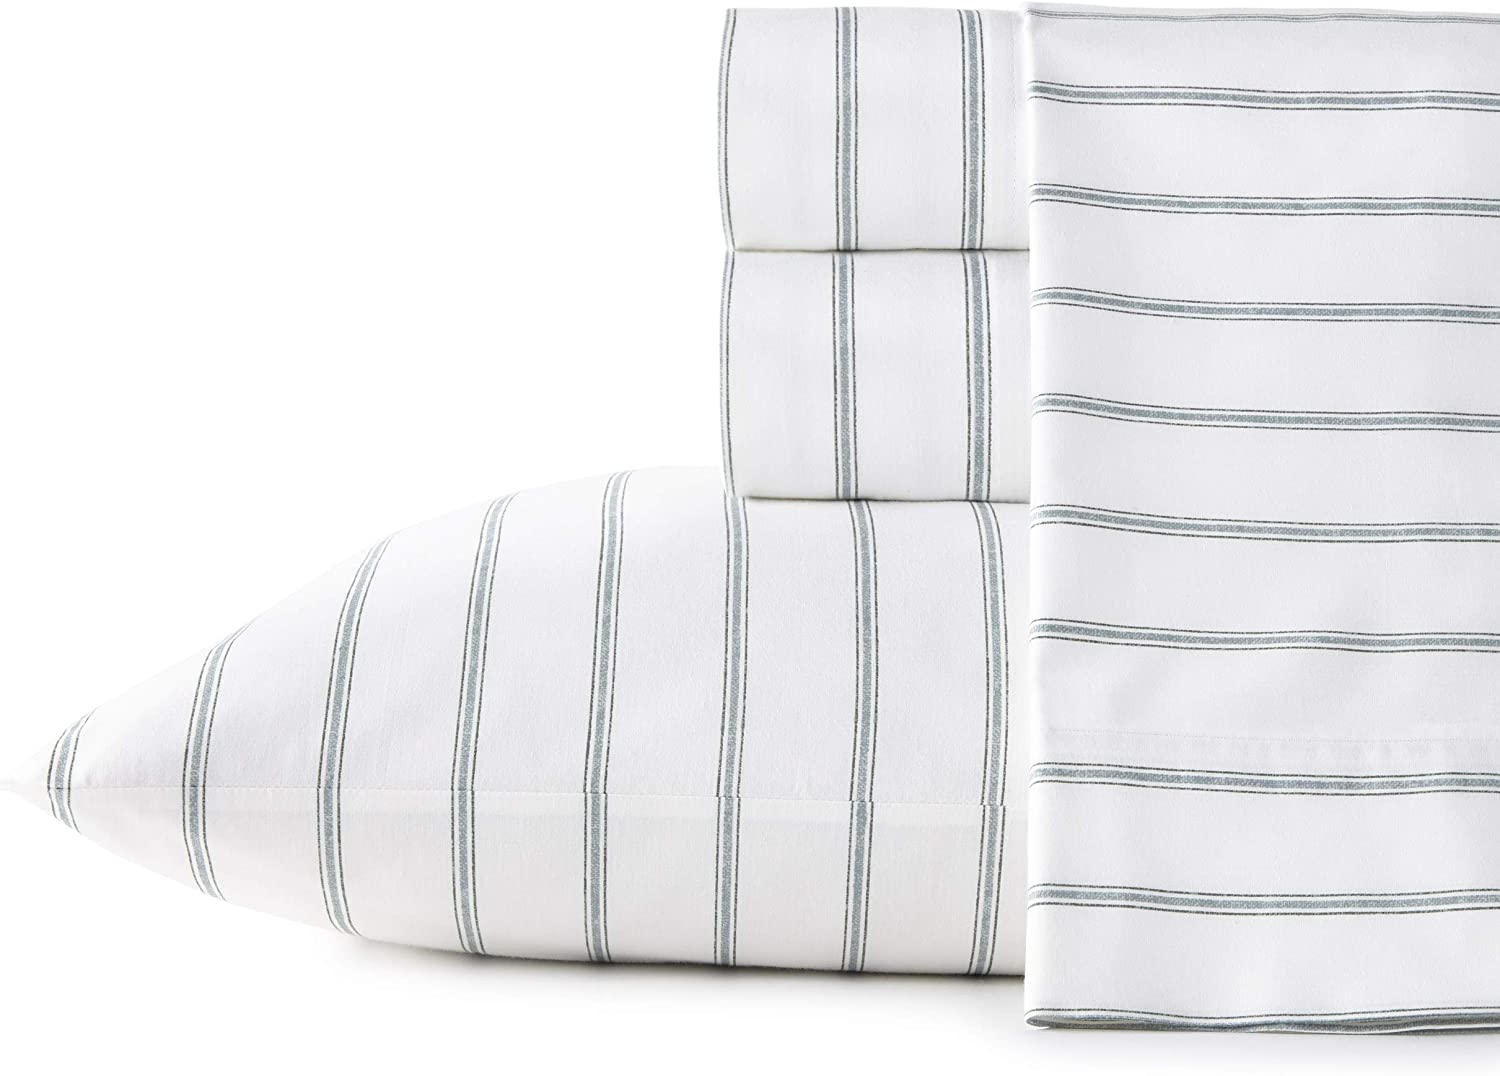 Stone Cottage Sheet Set, Queen, Trenton Stripe